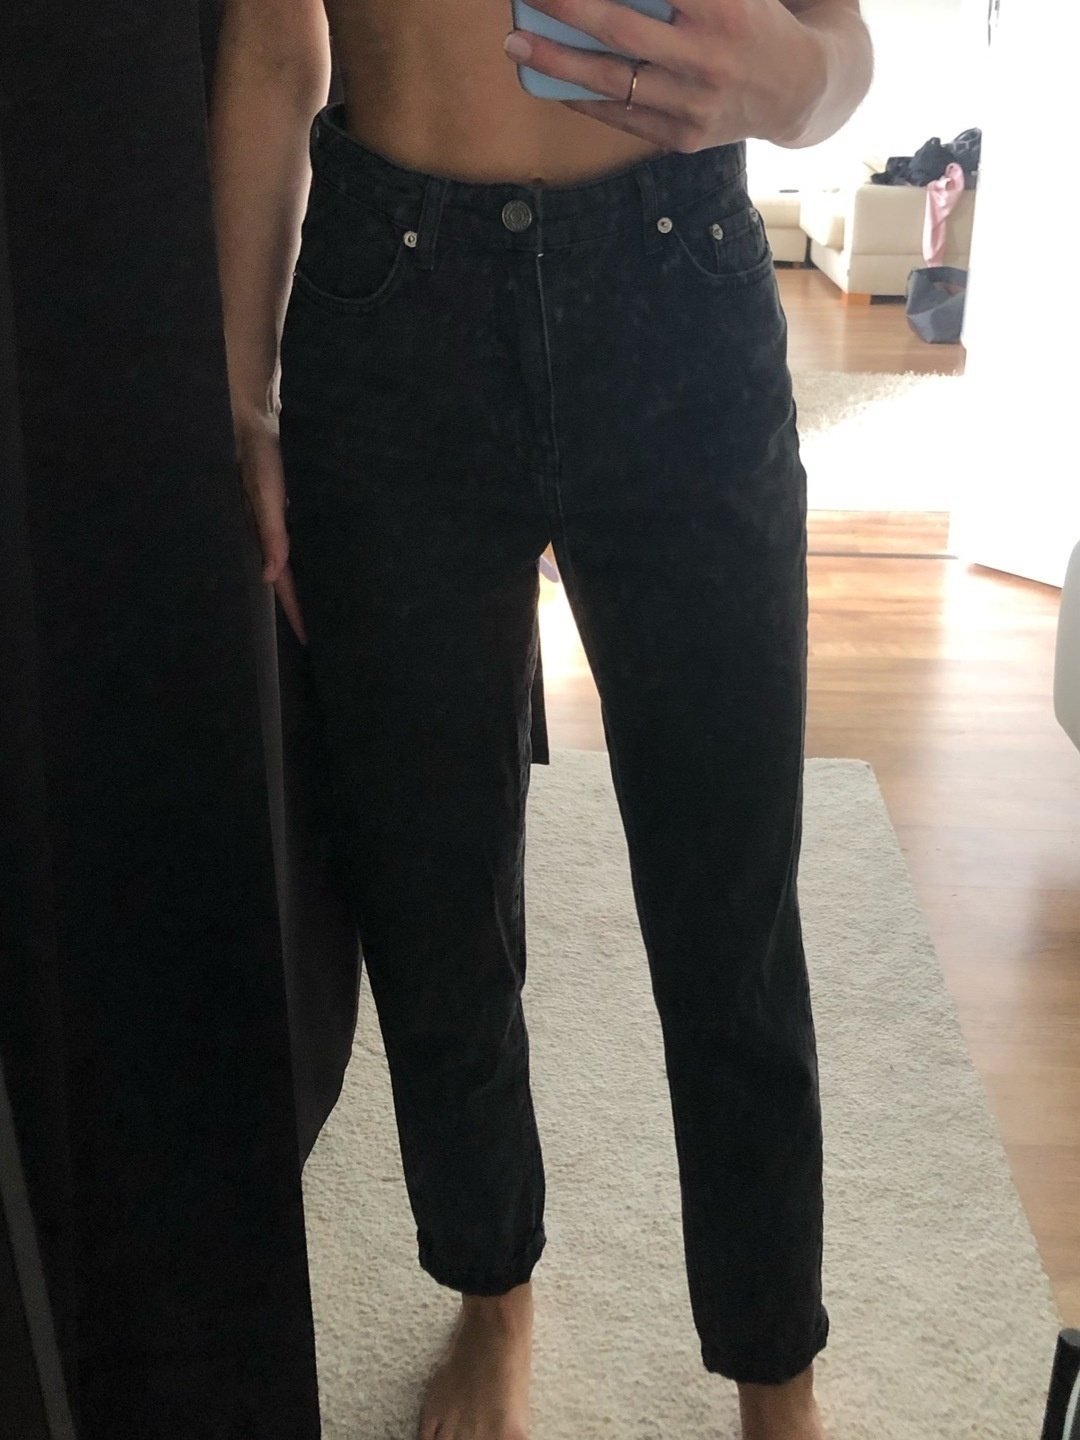 Women's trousers & jeans - GINA GROT photo 1